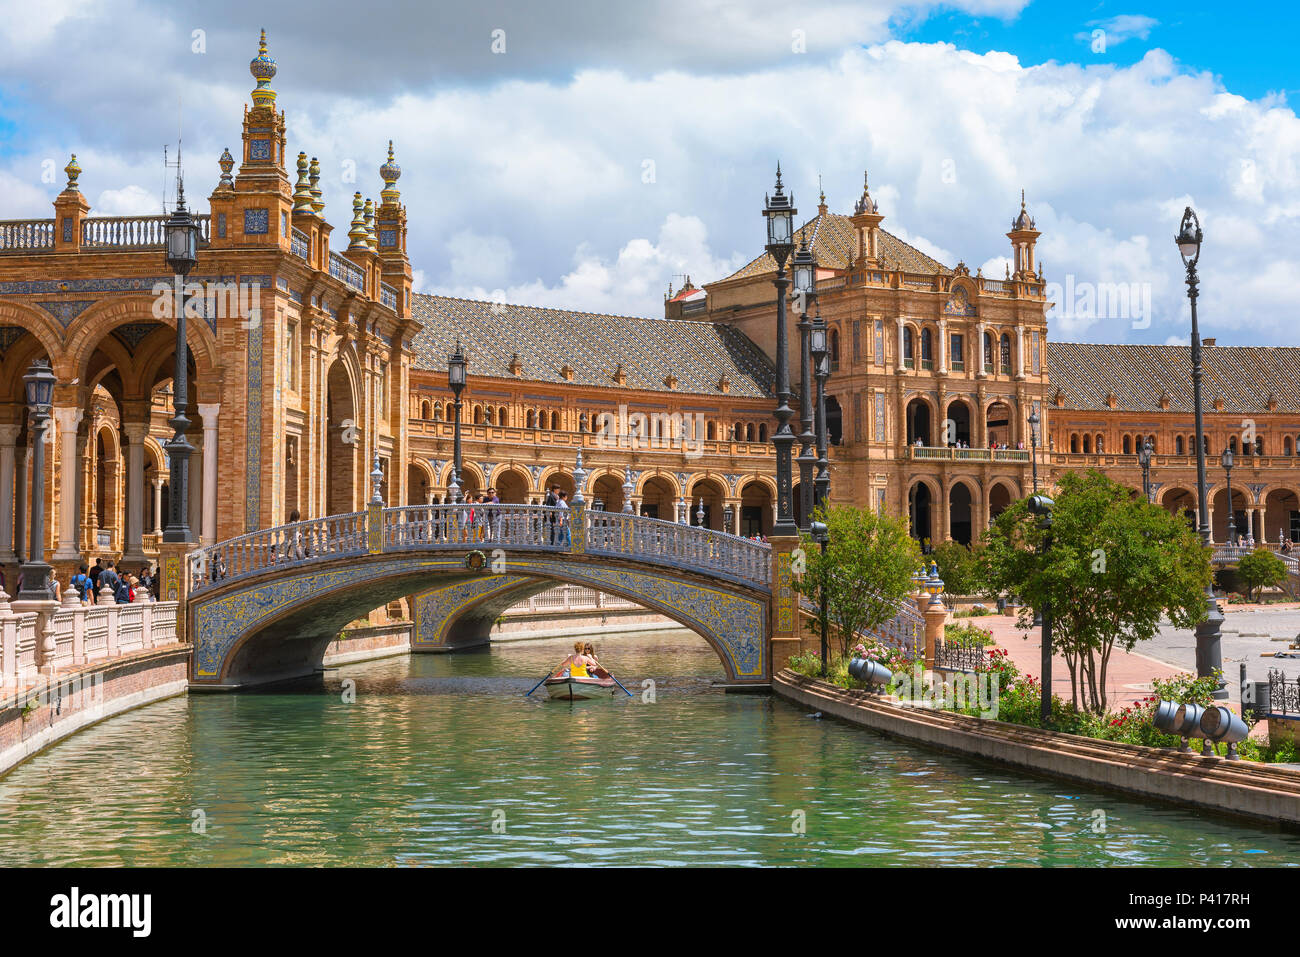 Seville Plaza de Espana, view of the boating lake in the Plaza de Espana in Seville, Andalucia, Spain. - Stock Image